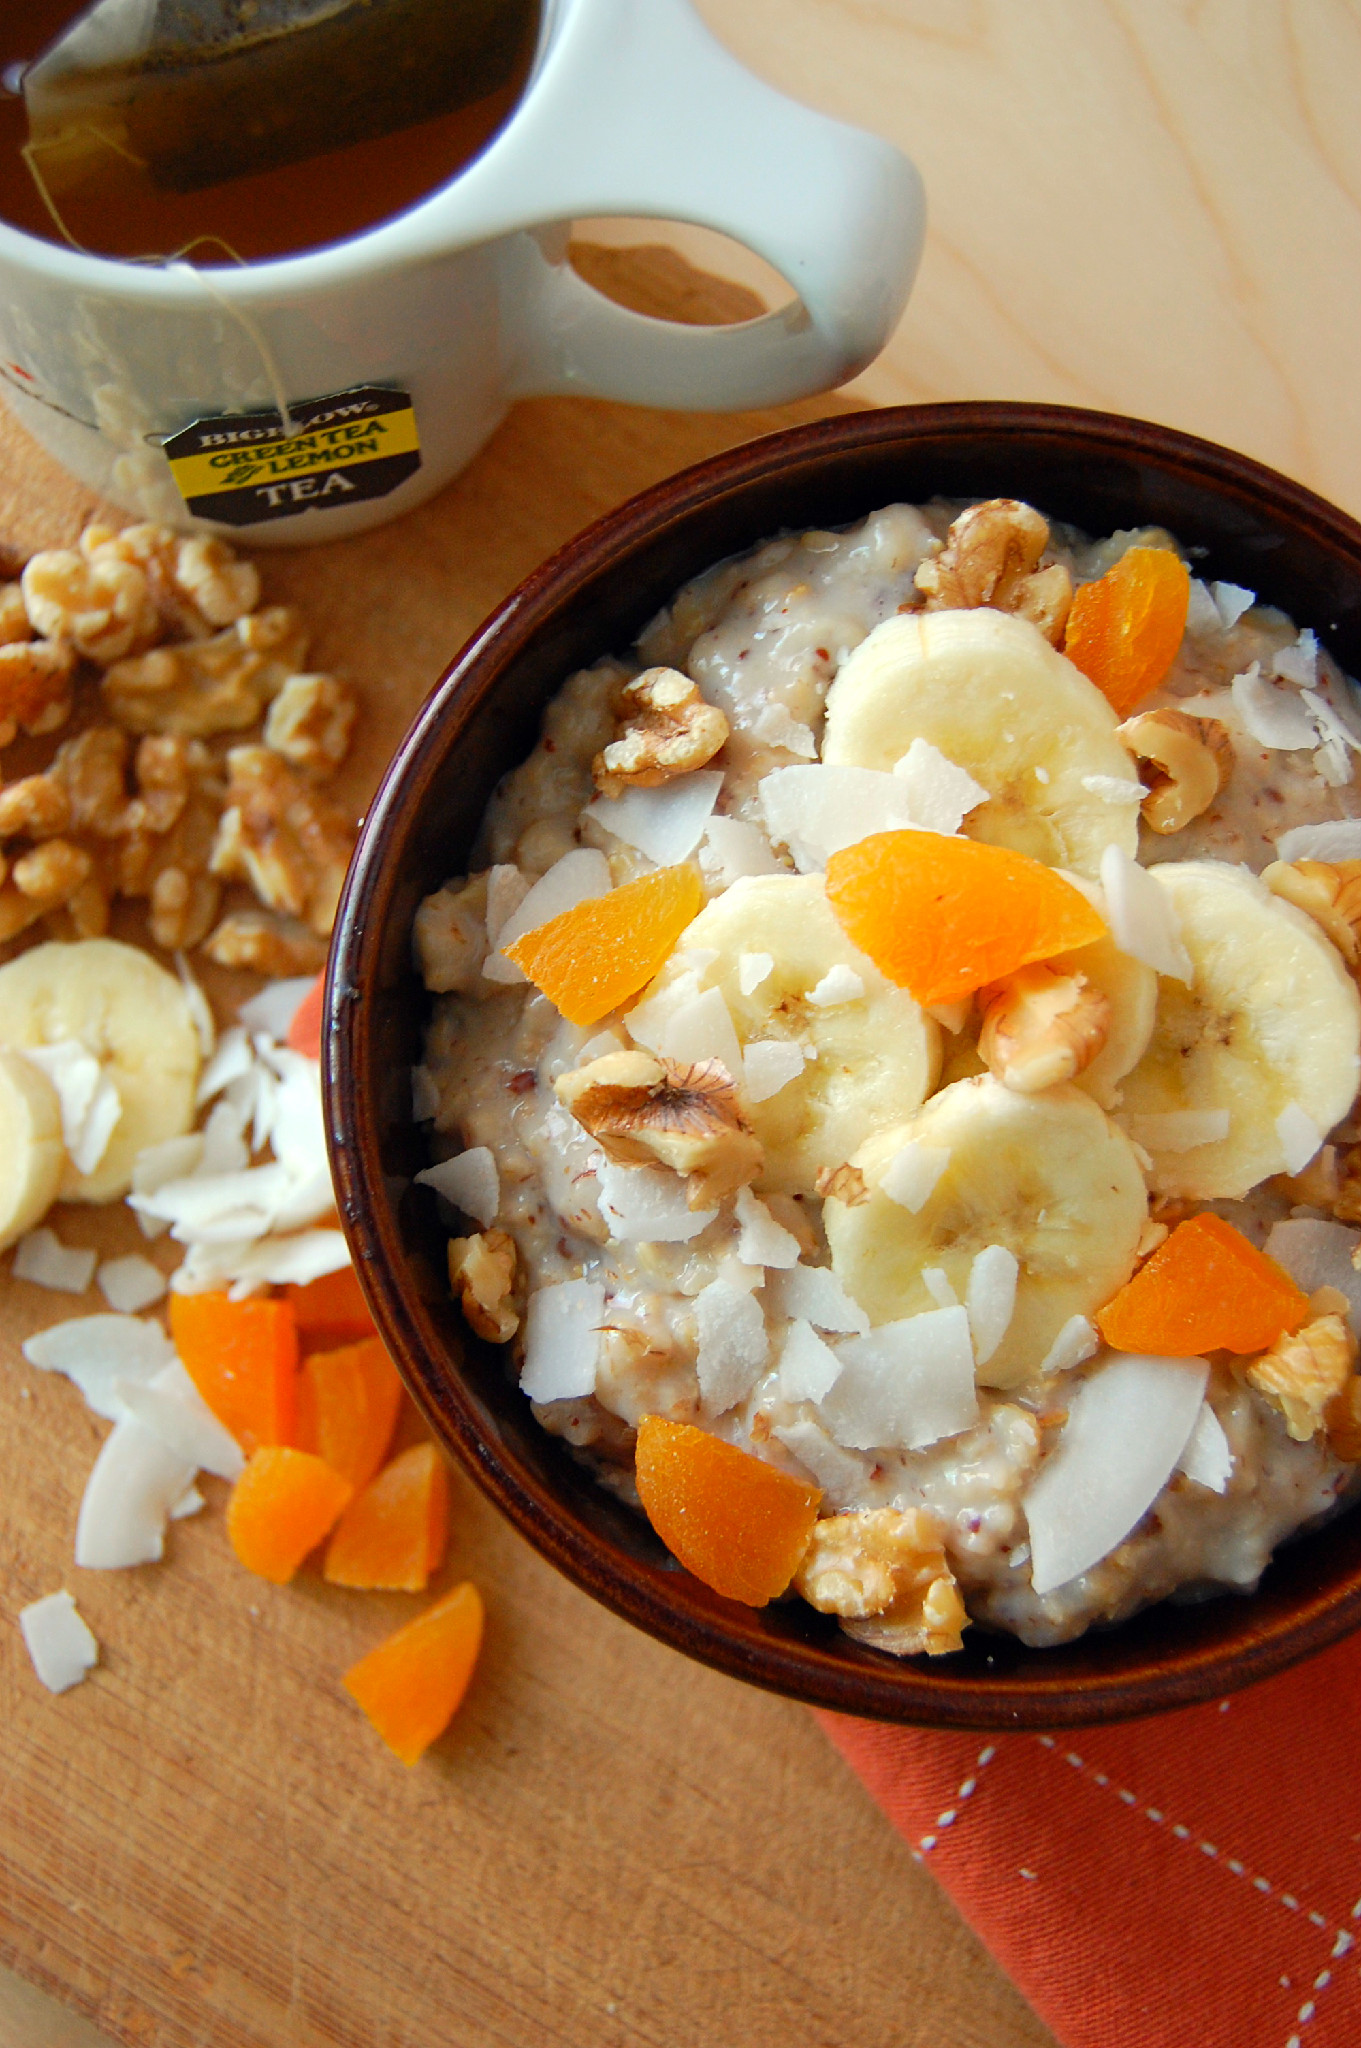 Creamy Green Tea Oatmeal loaded with healthy add-ins